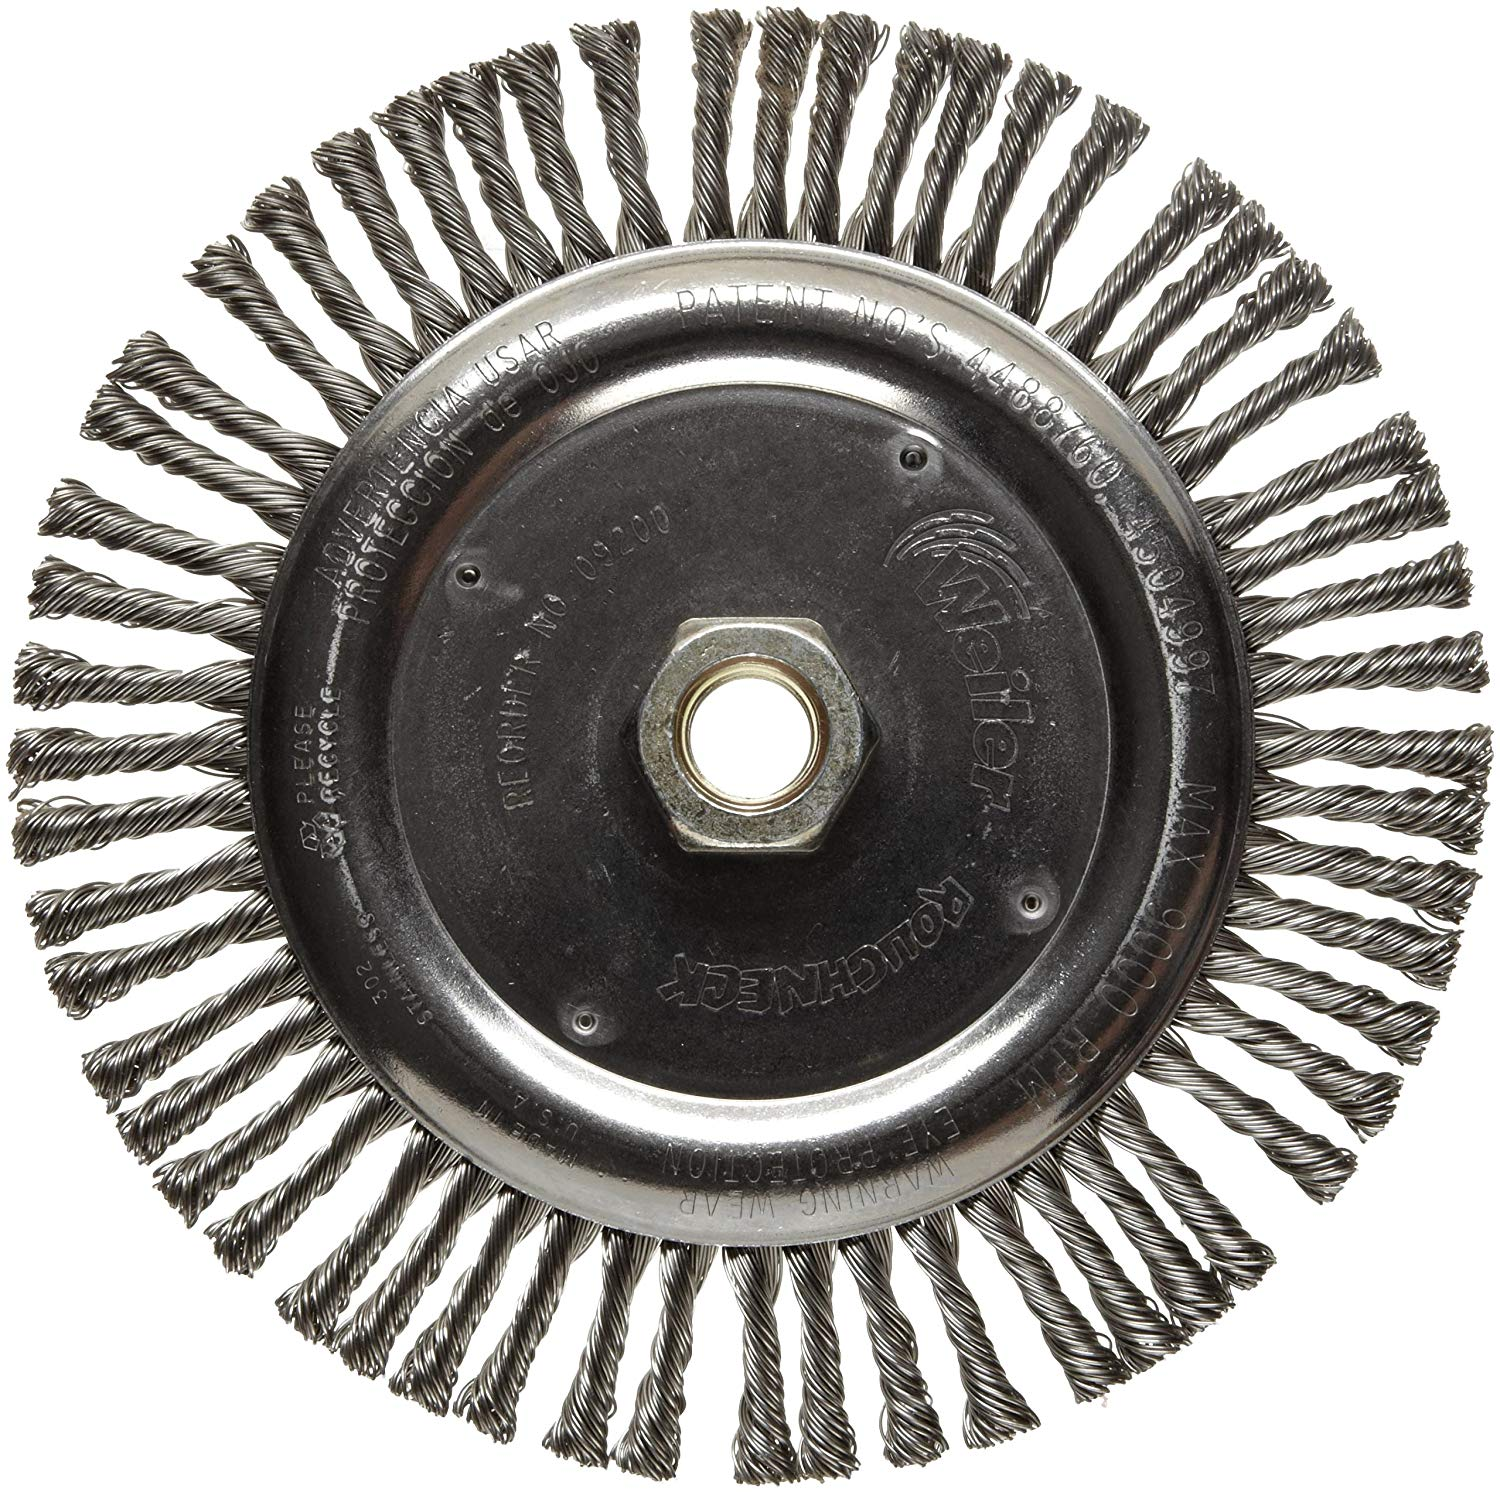 Round Hole 1//2-3//8 Arbor Crimped Wire 0.0118 Wire Diameter Stainless Steel 302 1//2 Brush Face Width Weiler Trulock Narrow Face Wire Wheel Brush 12500 rpm 4 Diameter 7//8 Bristle Length